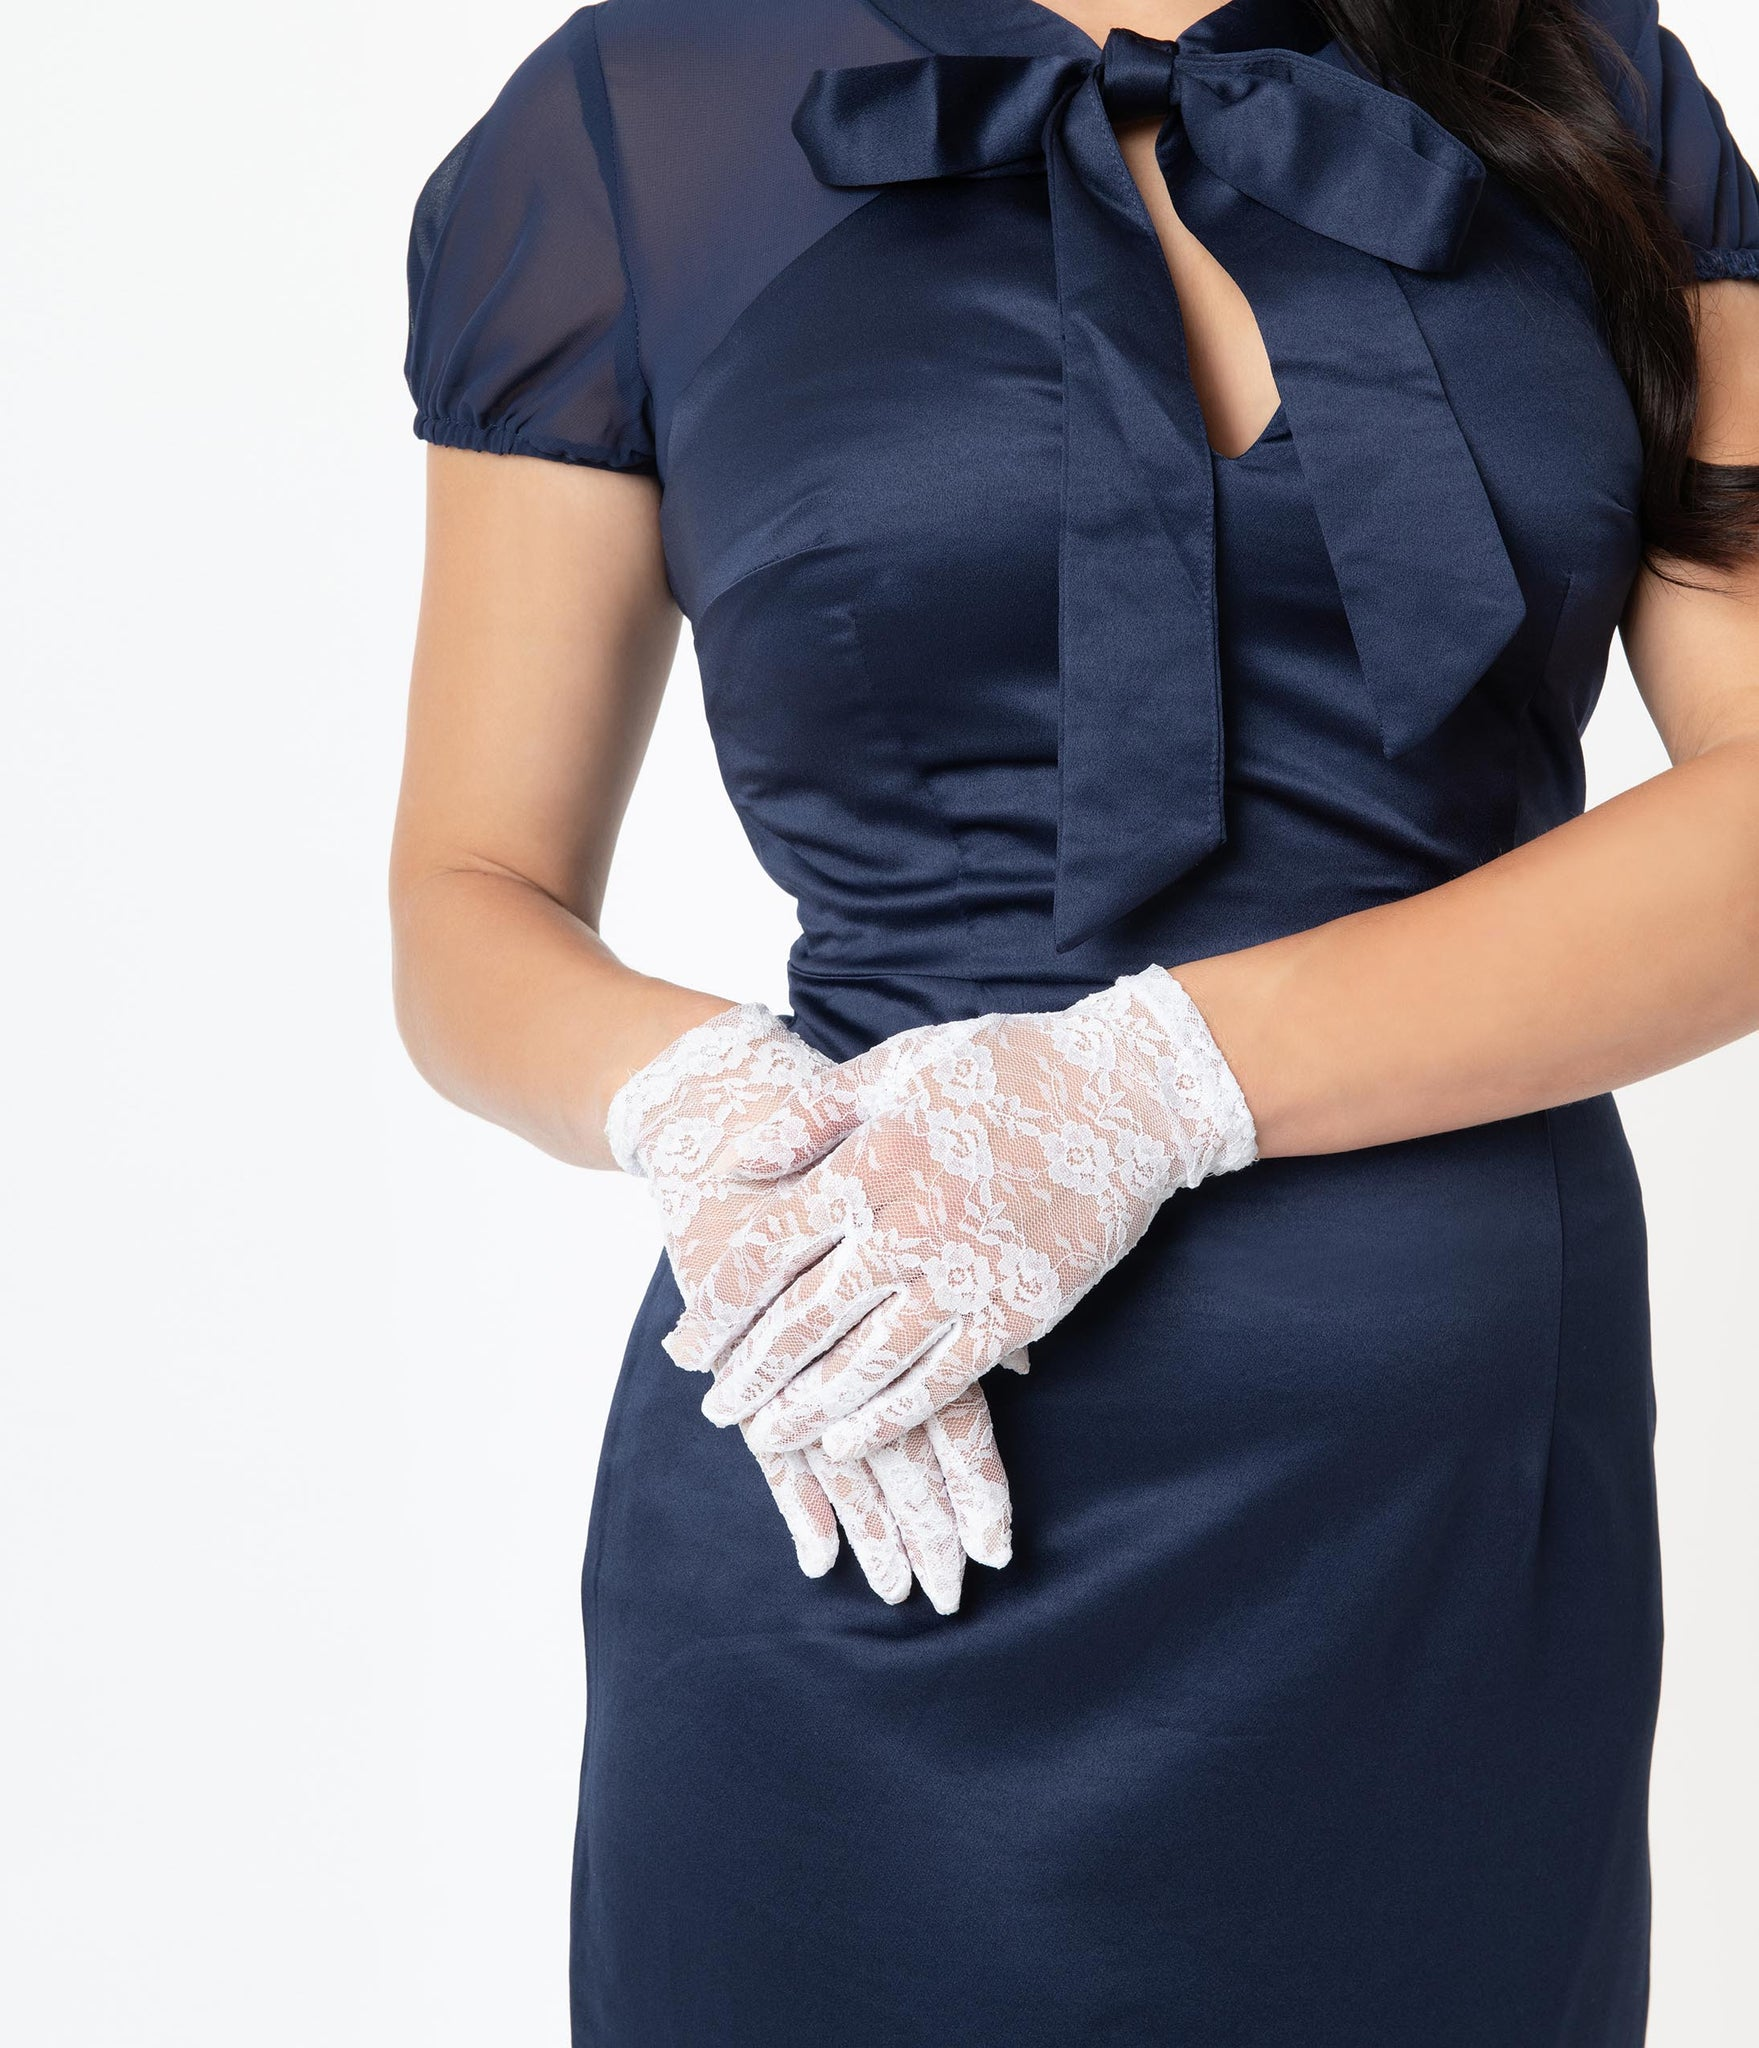 White Floral Lace Gloves